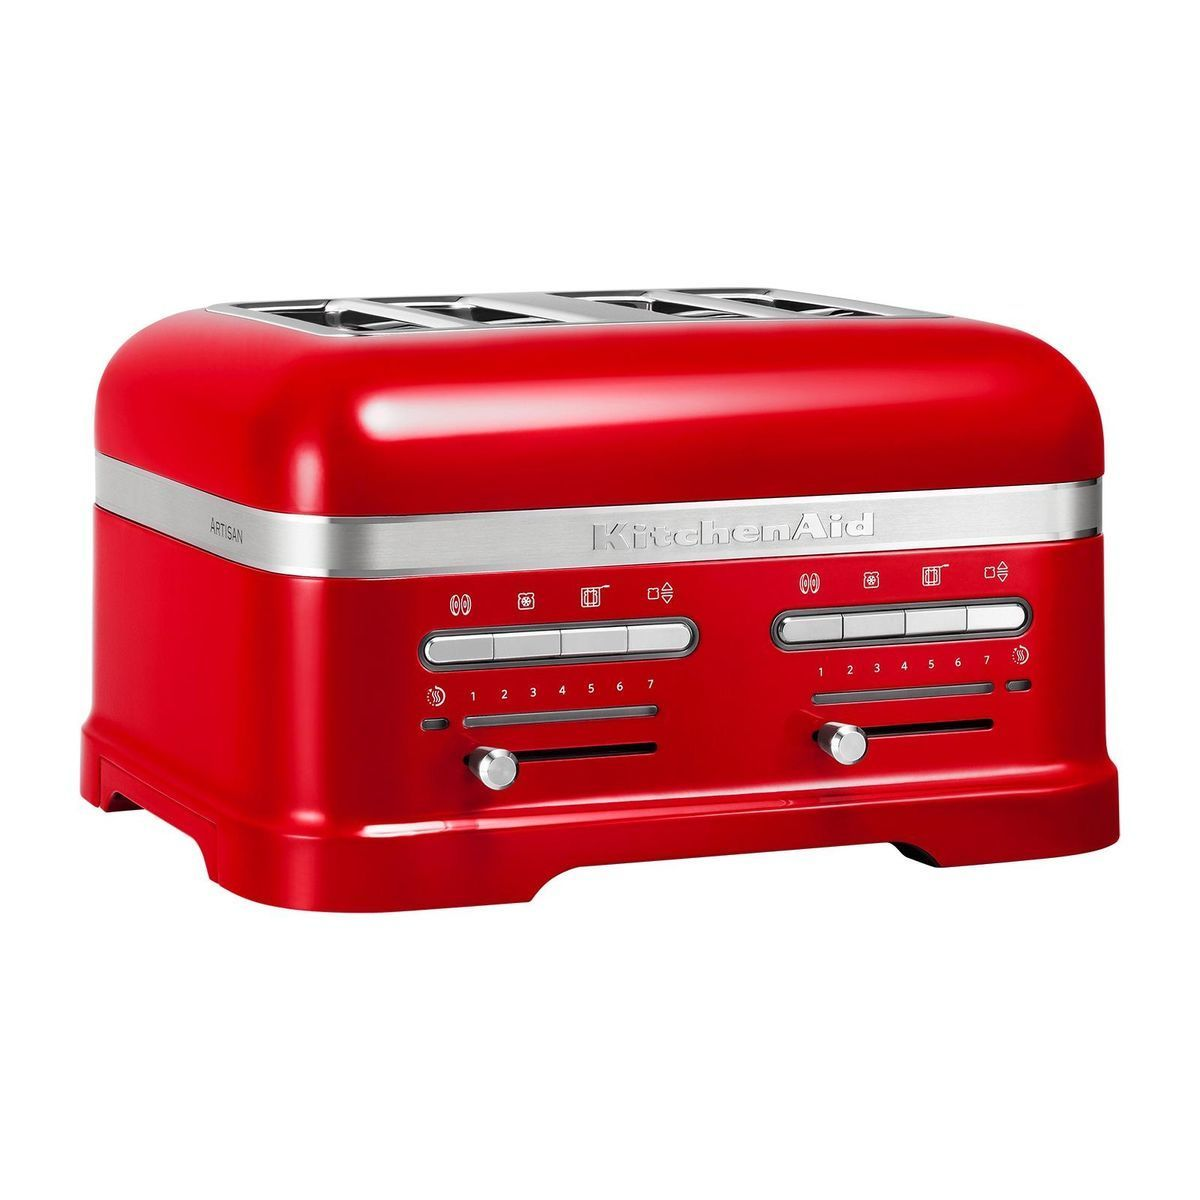 kitchenaid artisan 5kmt4205e toaster 4 slices kitchenaid. Black Bedroom Furniture Sets. Home Design Ideas